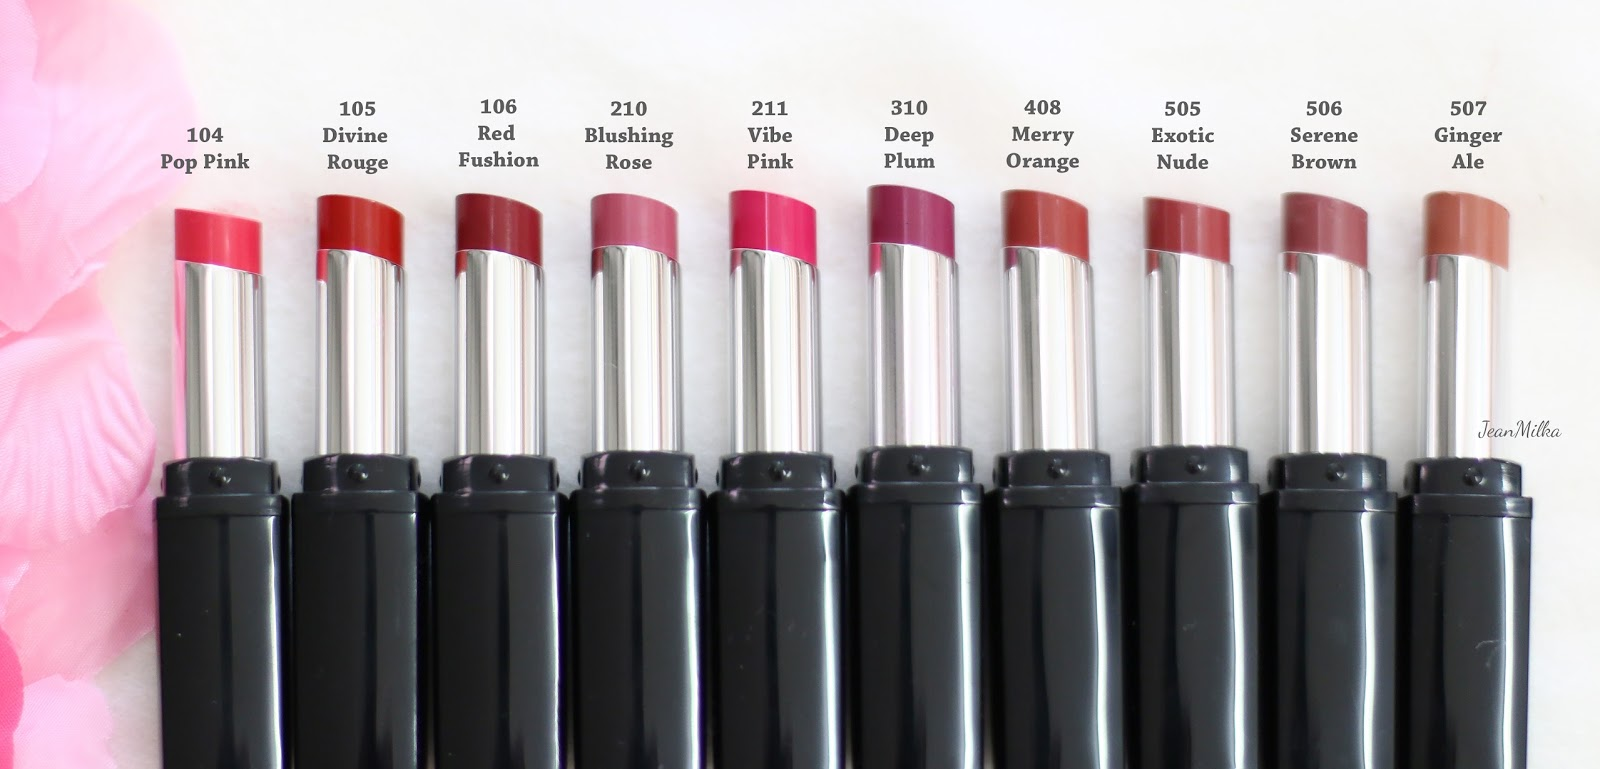 pixy, pixy matte in love, pixy lipstick, pixy cosmetics, lipstick, lips, makeup, drugstore, makeup murah, review, pixy matte in love semua warna